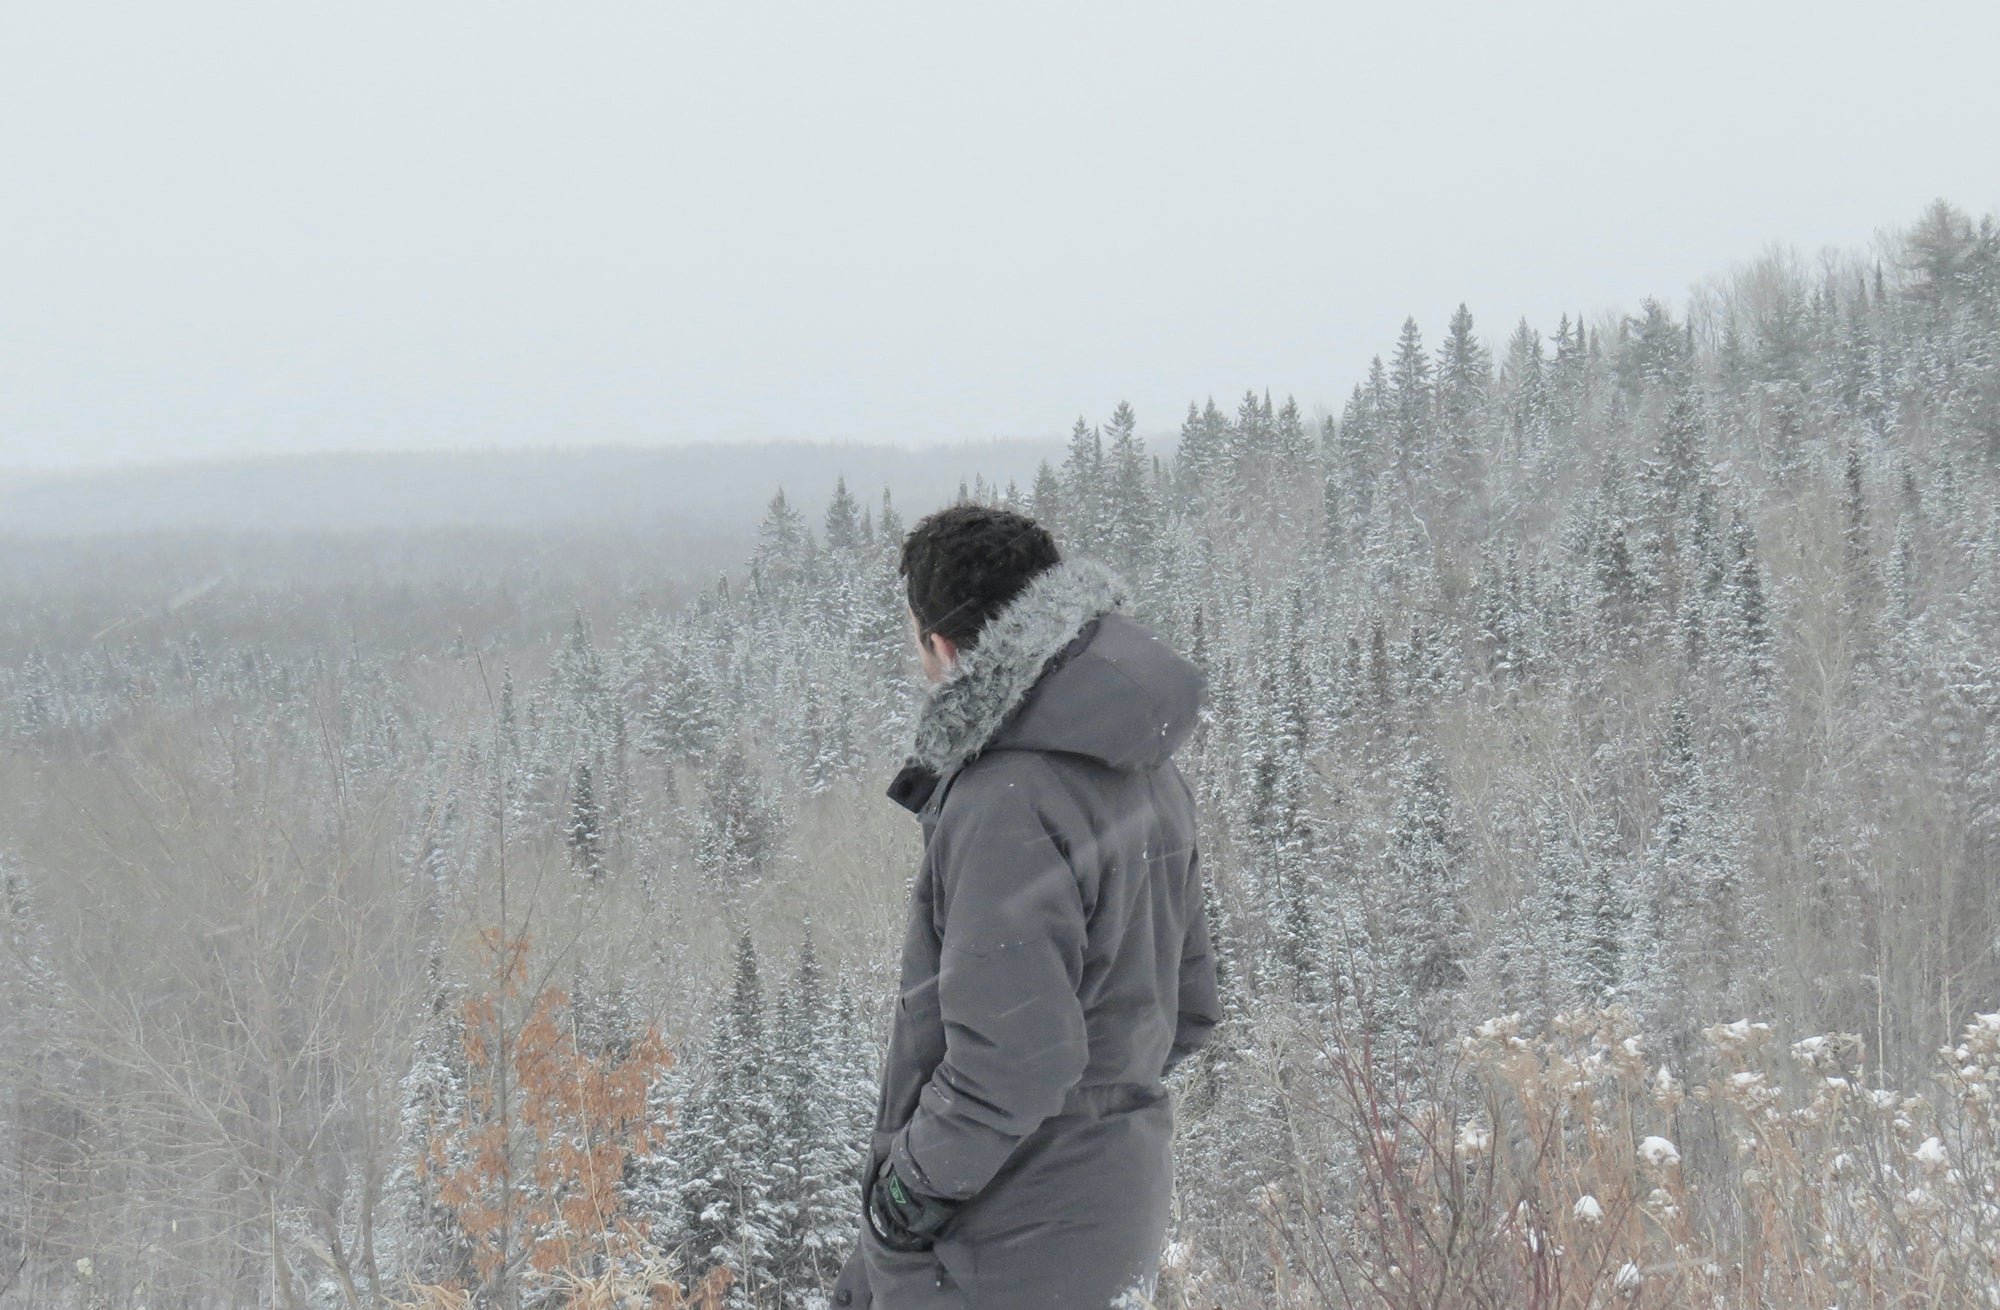 guy in a heated vest and jacket standing on a snowy mountain with trees in the background